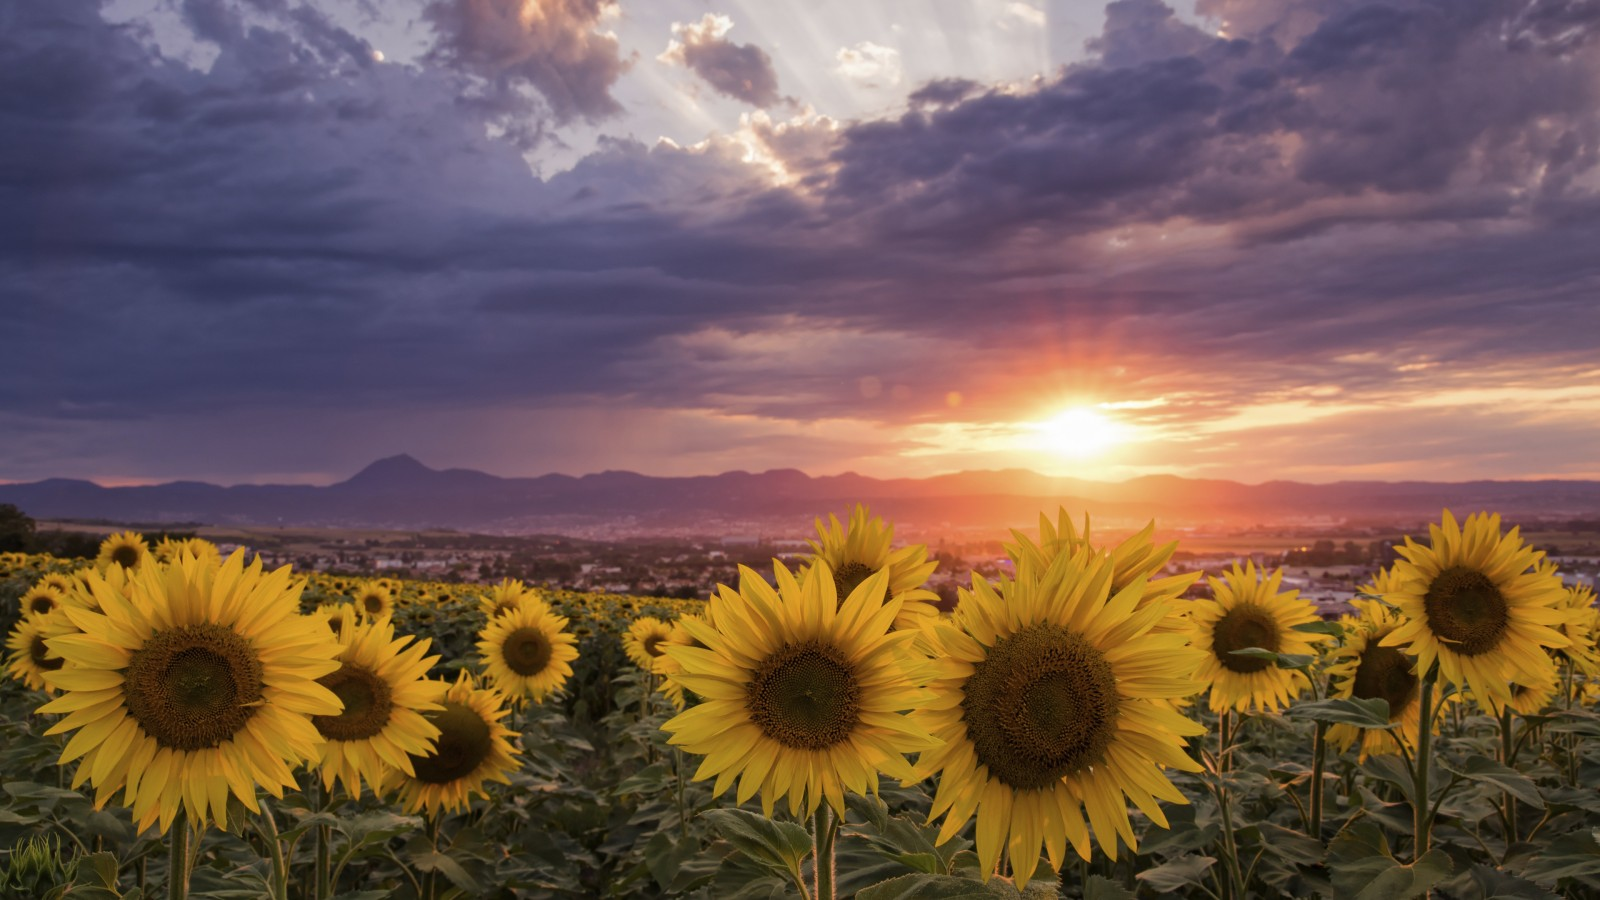 Check out some great models from samsung, toshiba and lg. Sunflowers During Sunrise 4K HD Flowers Wallpapers | HD